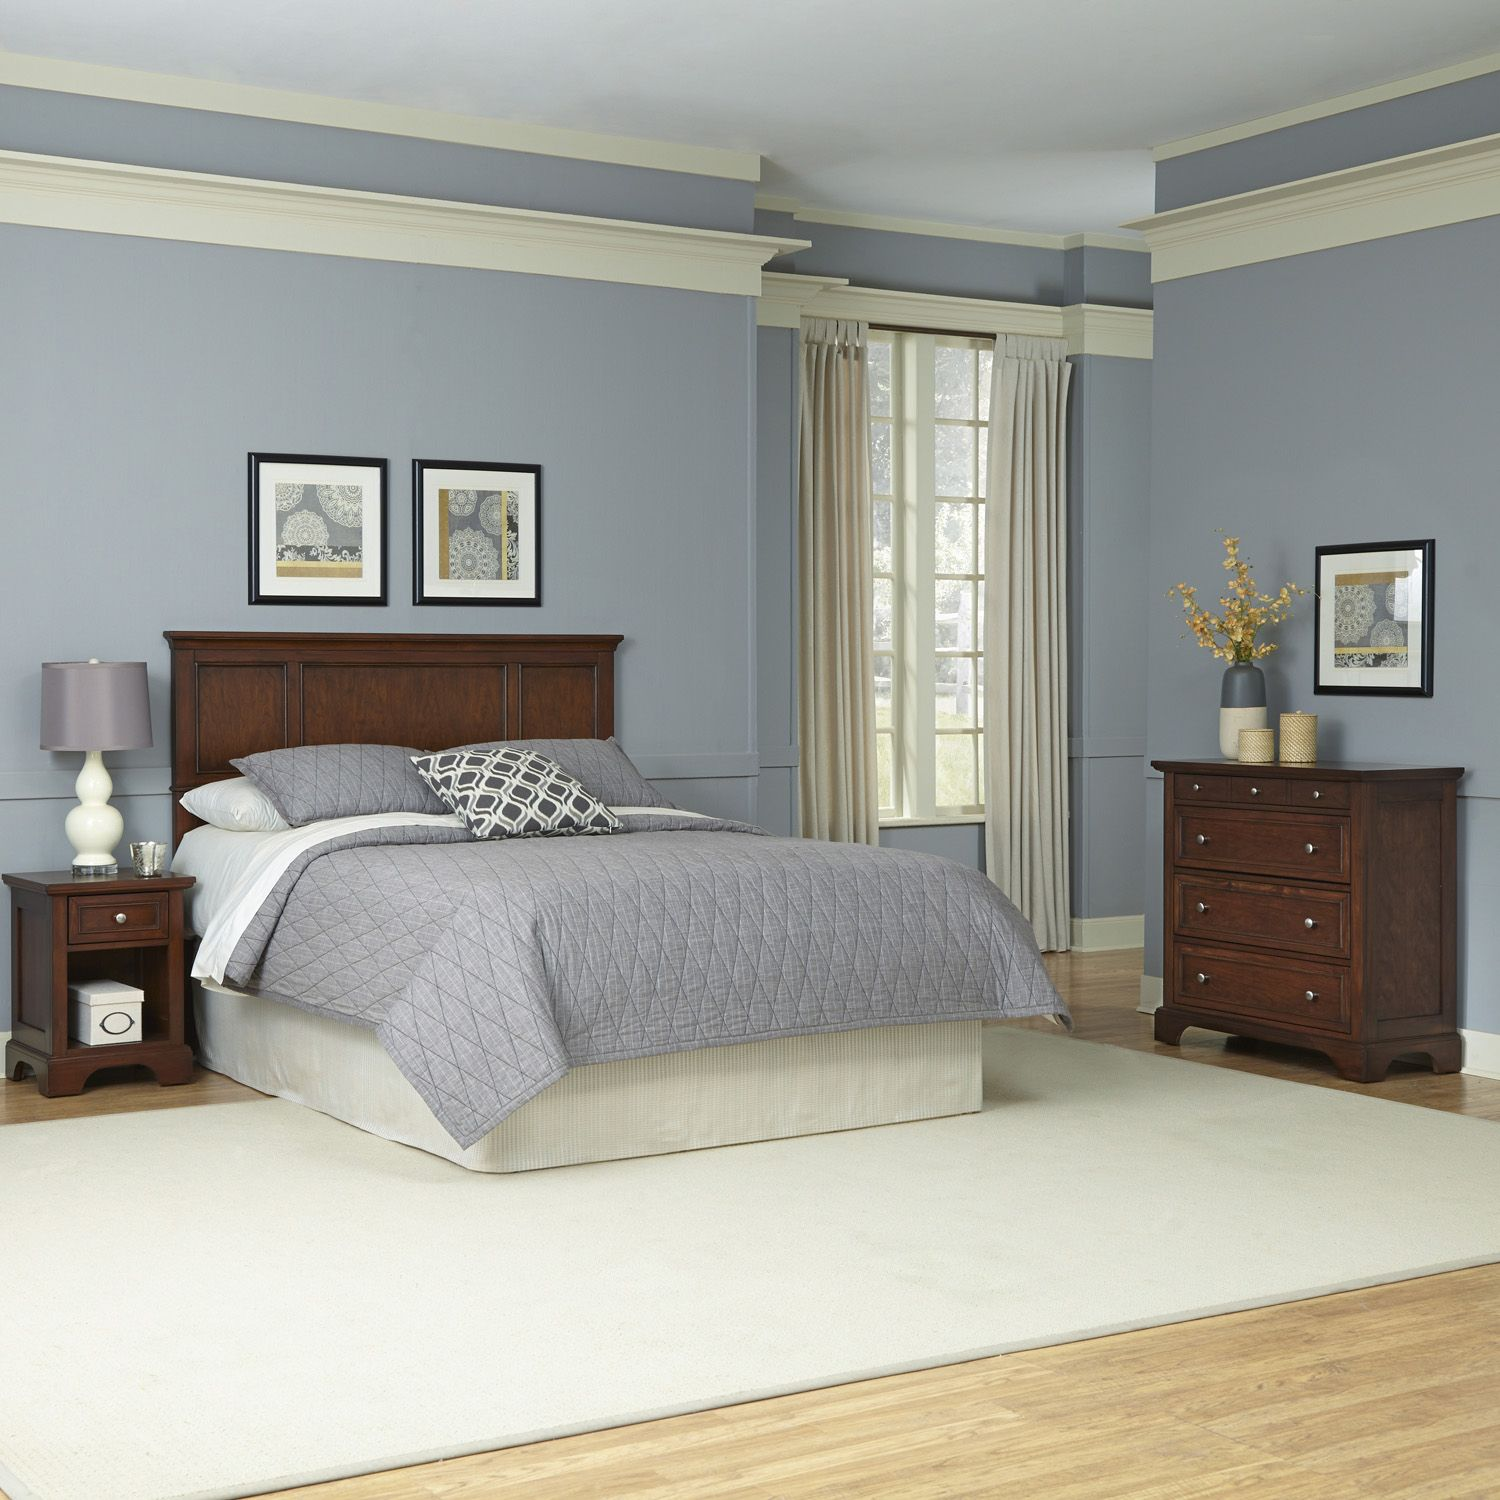 Marvelous Home Styles piece Chesapeake Bedroom Set